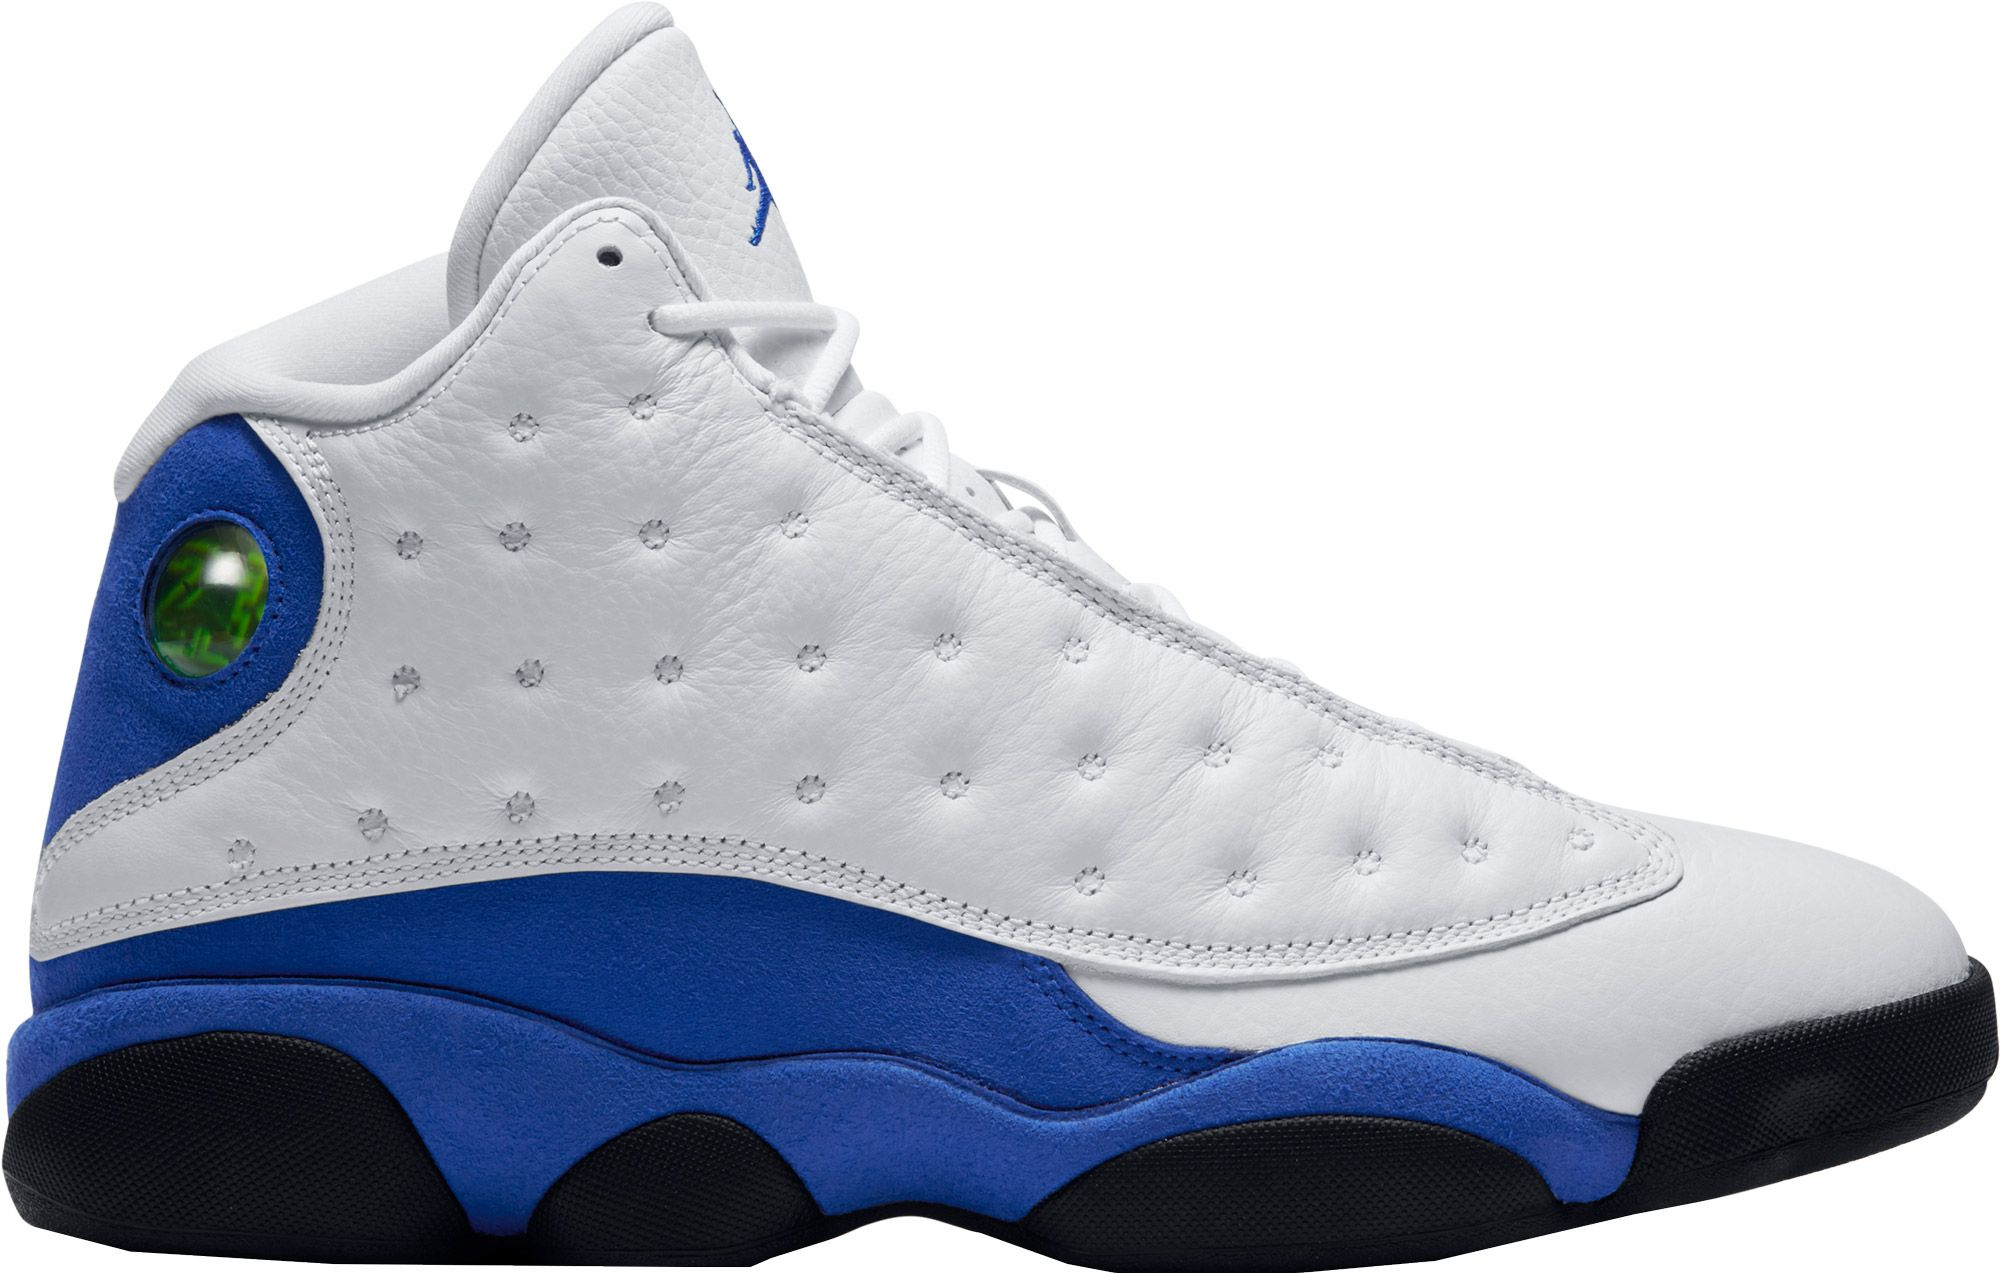 c4a7aa0fb0572 Jordan Men s Air Jordan 13 Retro Basketball Shoes